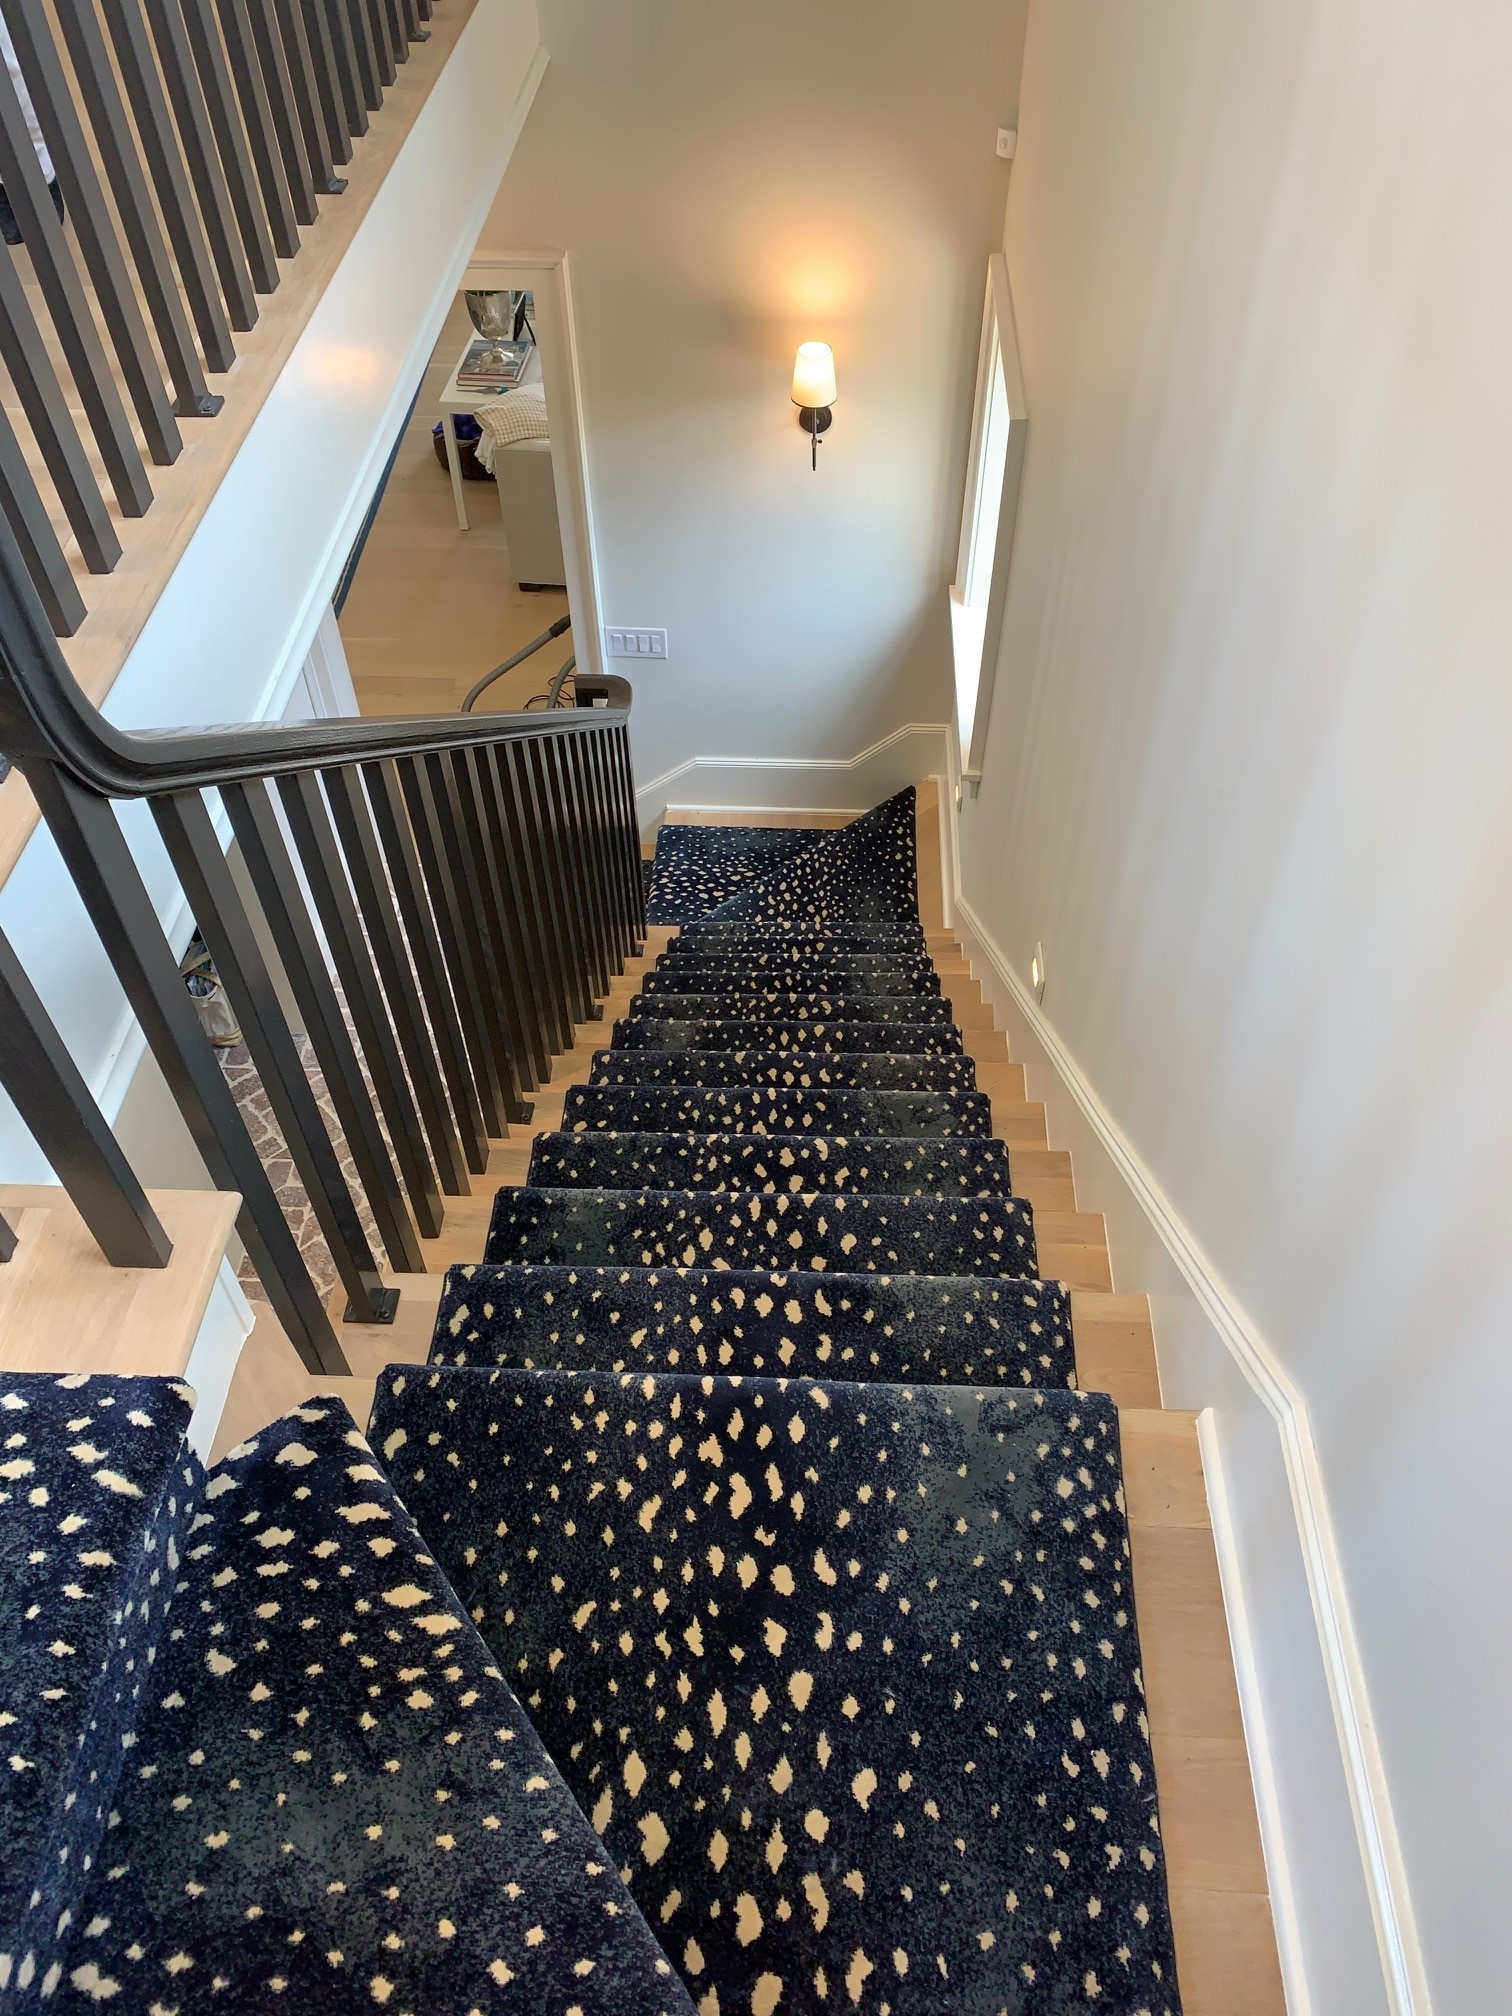 Custom Stair Runners Add Elegance To Your Home – Coventry Flooring | Carpet Cover For Stairs | Flooring | Stylish | Cheap | Diamond Pattern | Patterned